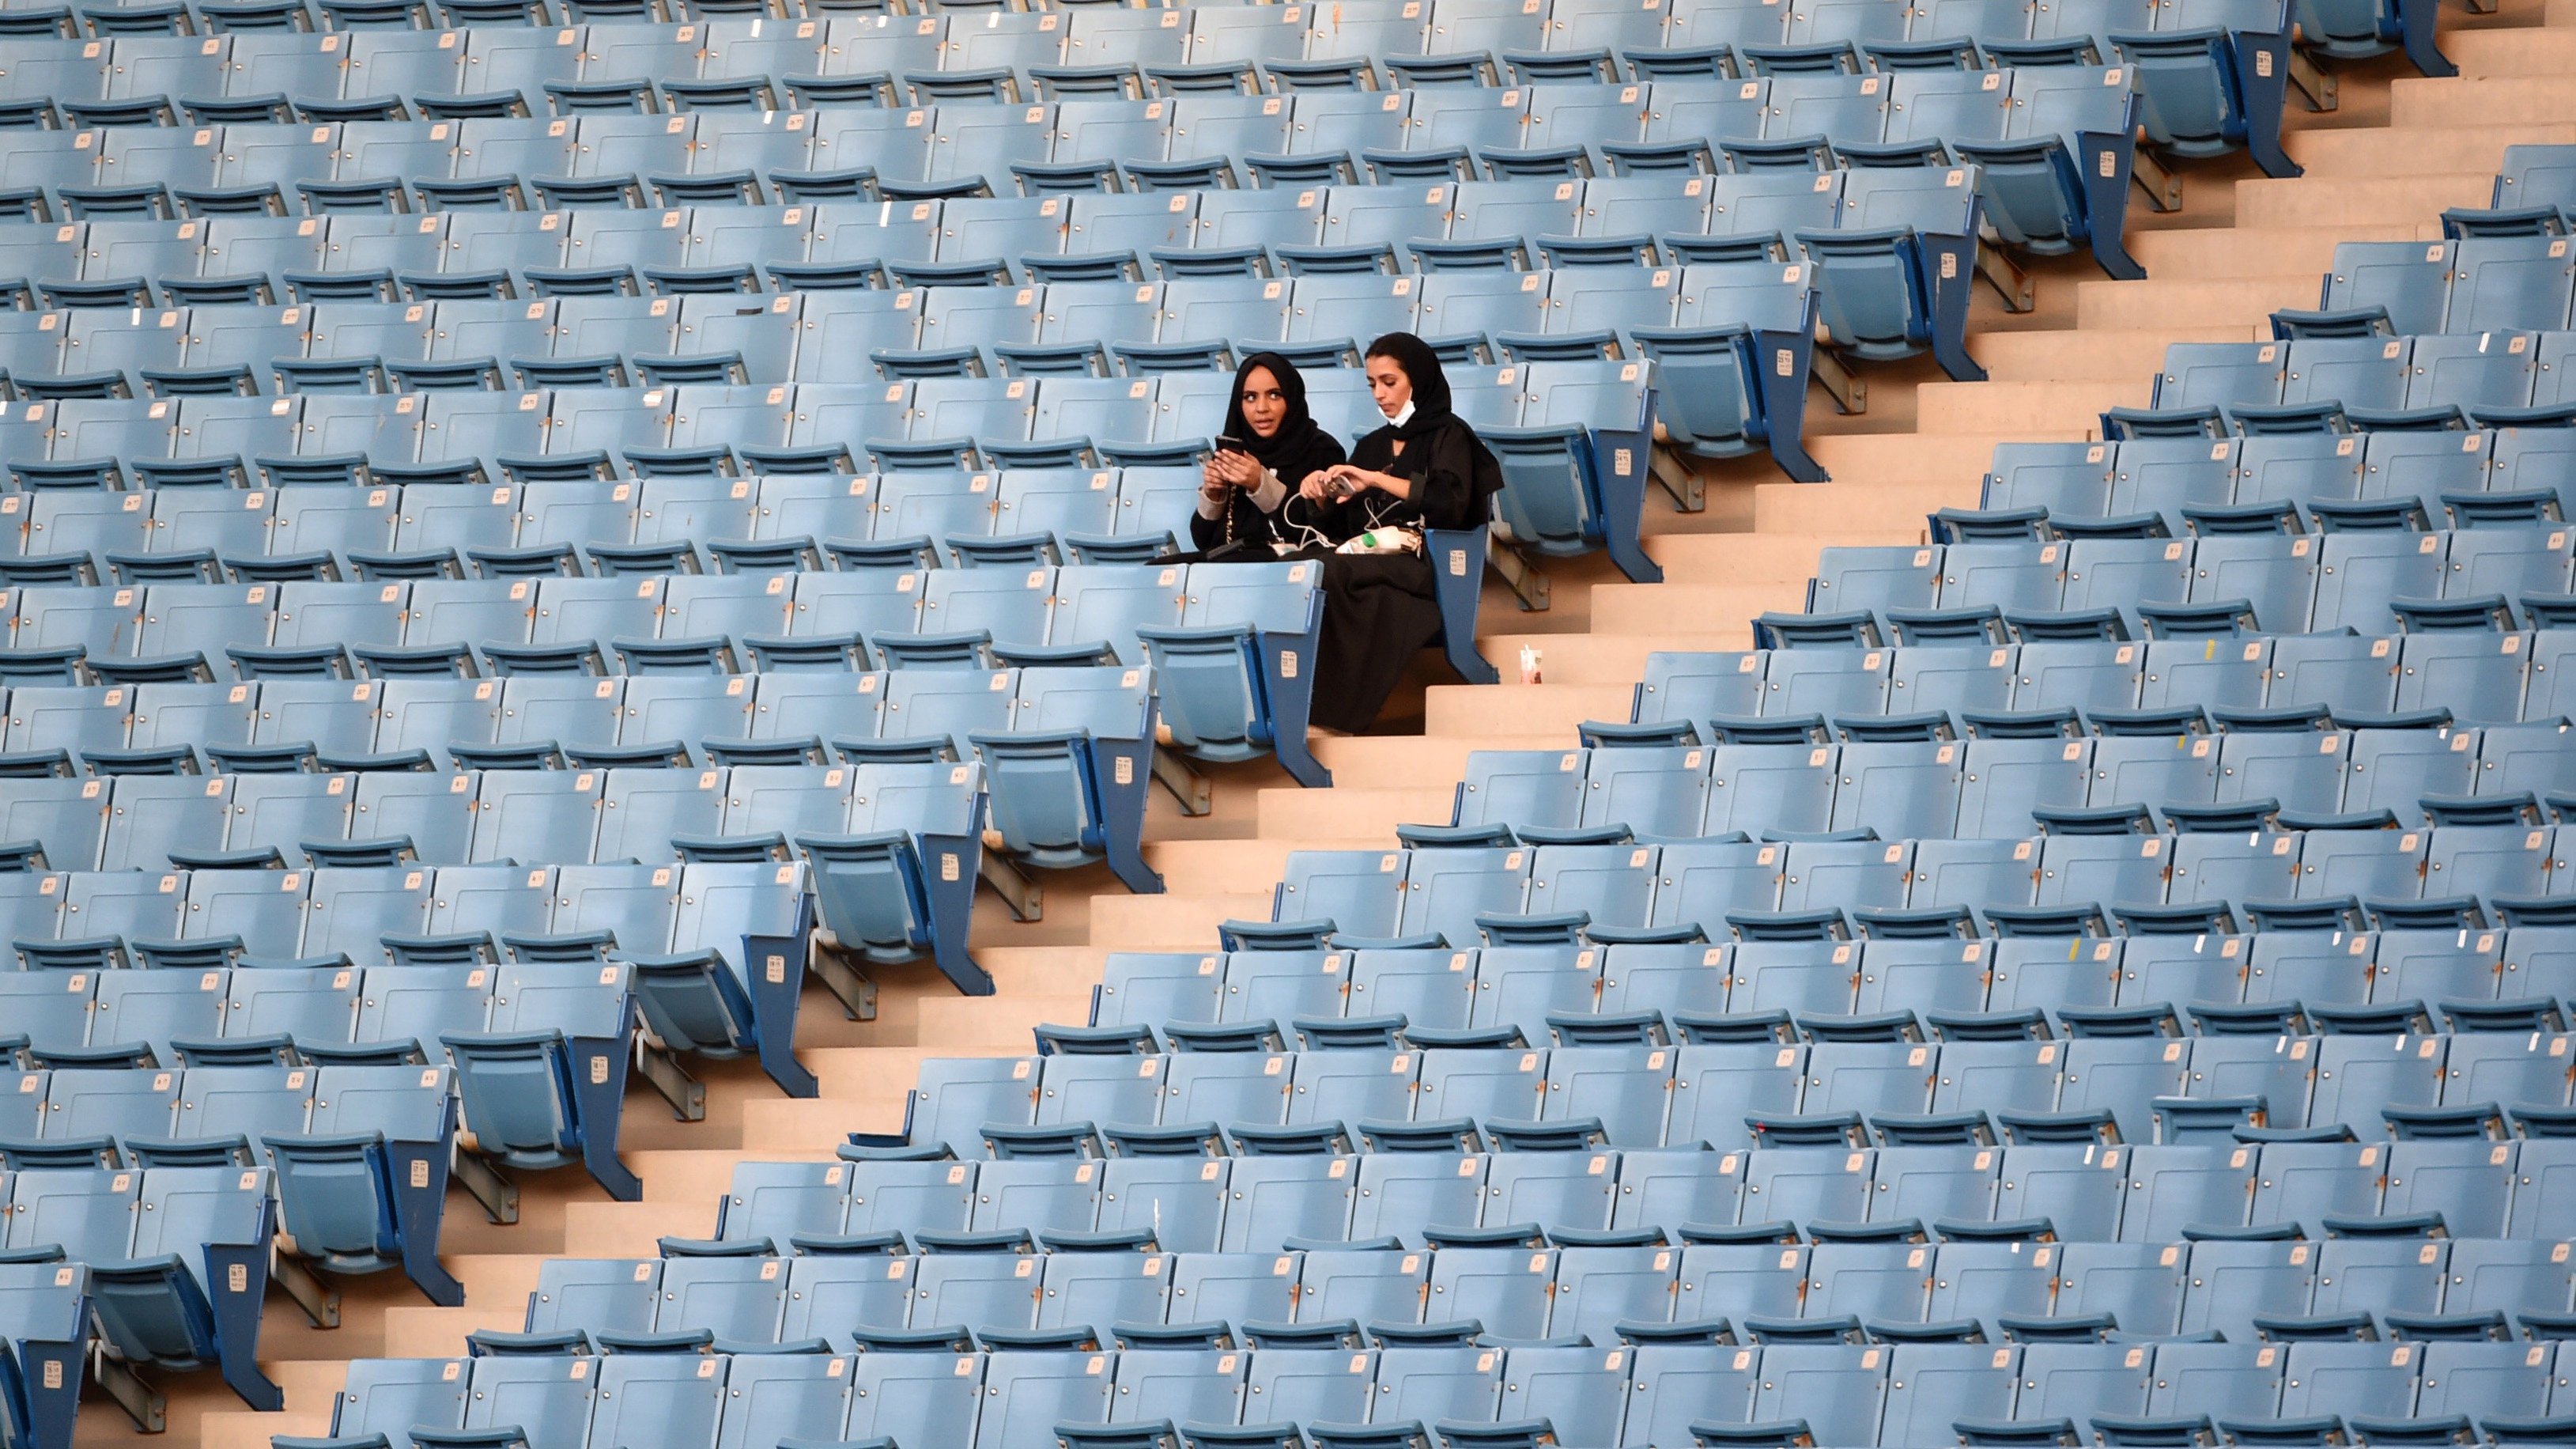 The presence of women at the King Fahd stadium marks a departure from previous celebrations in the Gulf kingdom. (AFP)